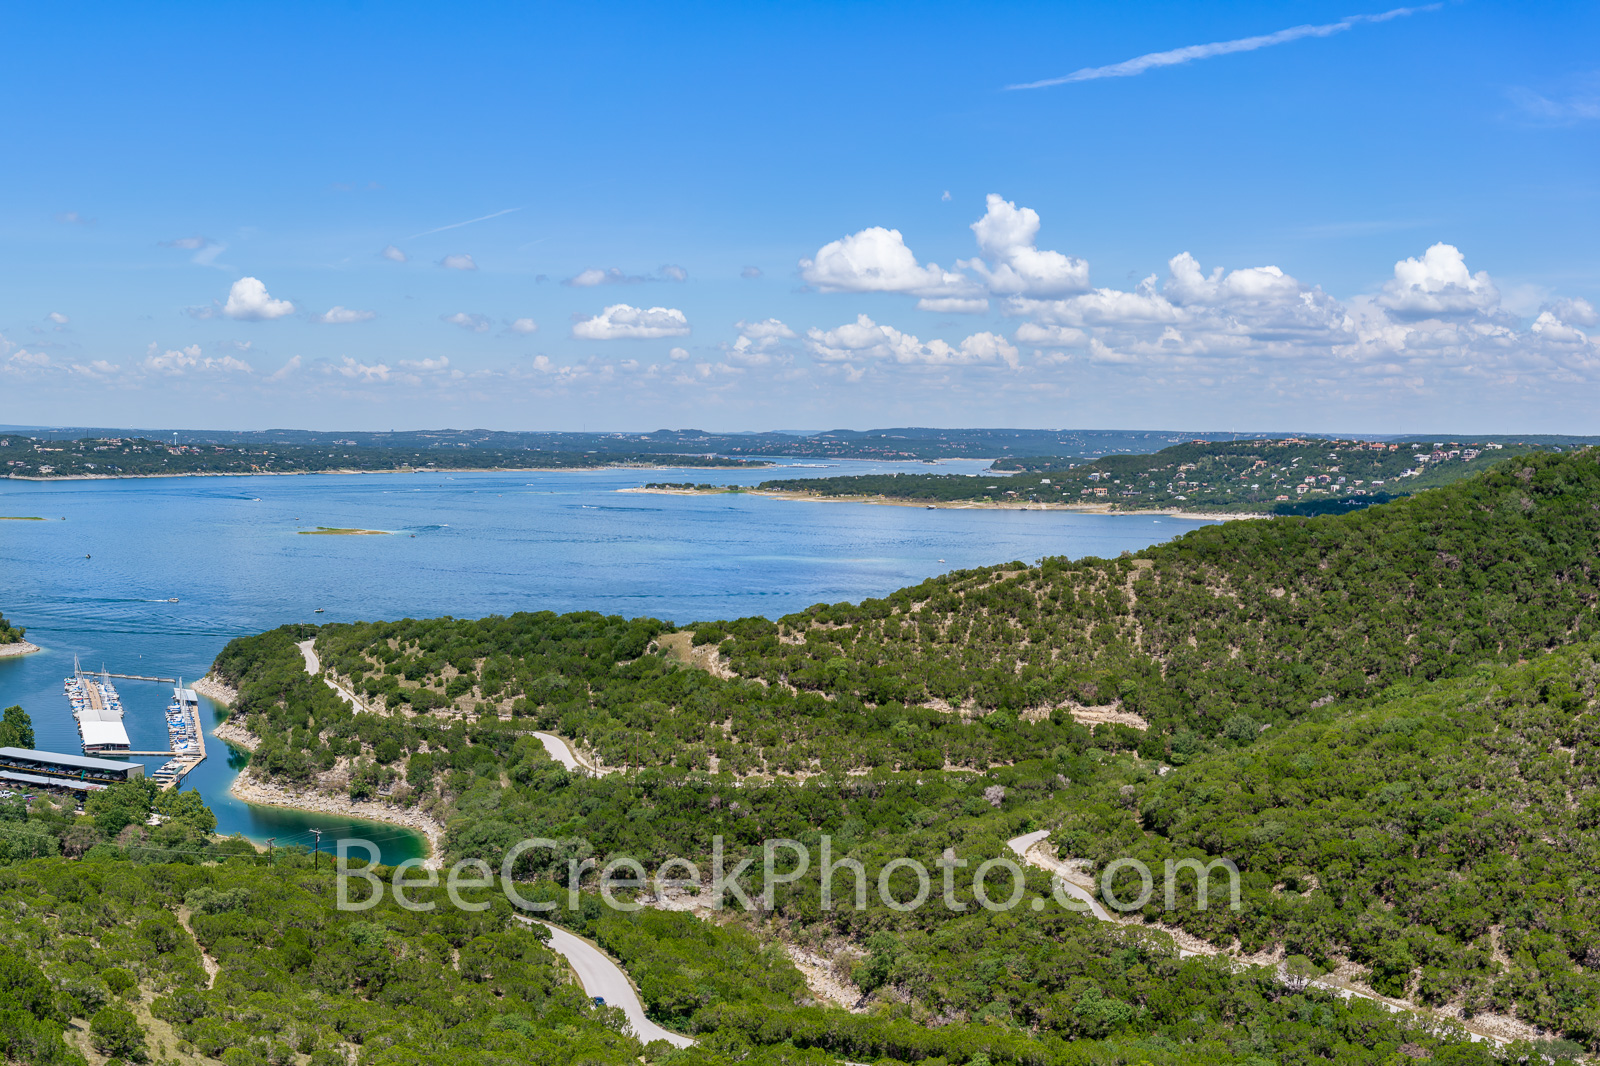 Lake Travis Aerial View - This was our latest aerial view of lake travis during a beautiful blue sky day. We wanted to capture...